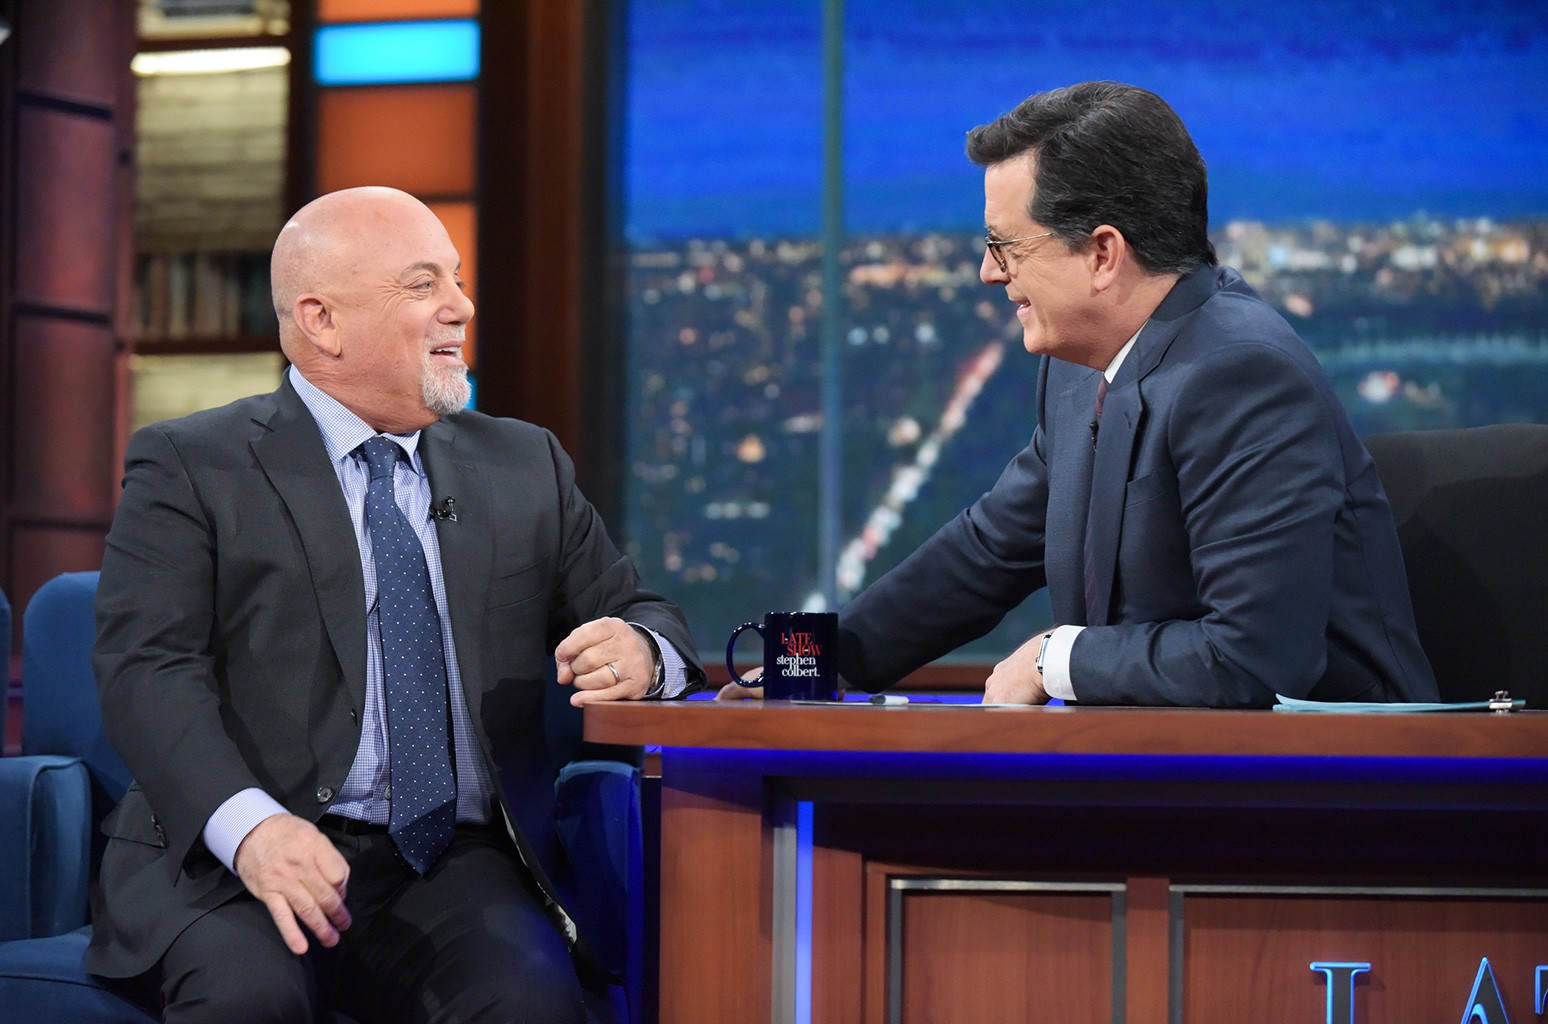 Billy Joel on 'The Late Show with Stephen Colbert' on Jan. 9, 2017 in New York.